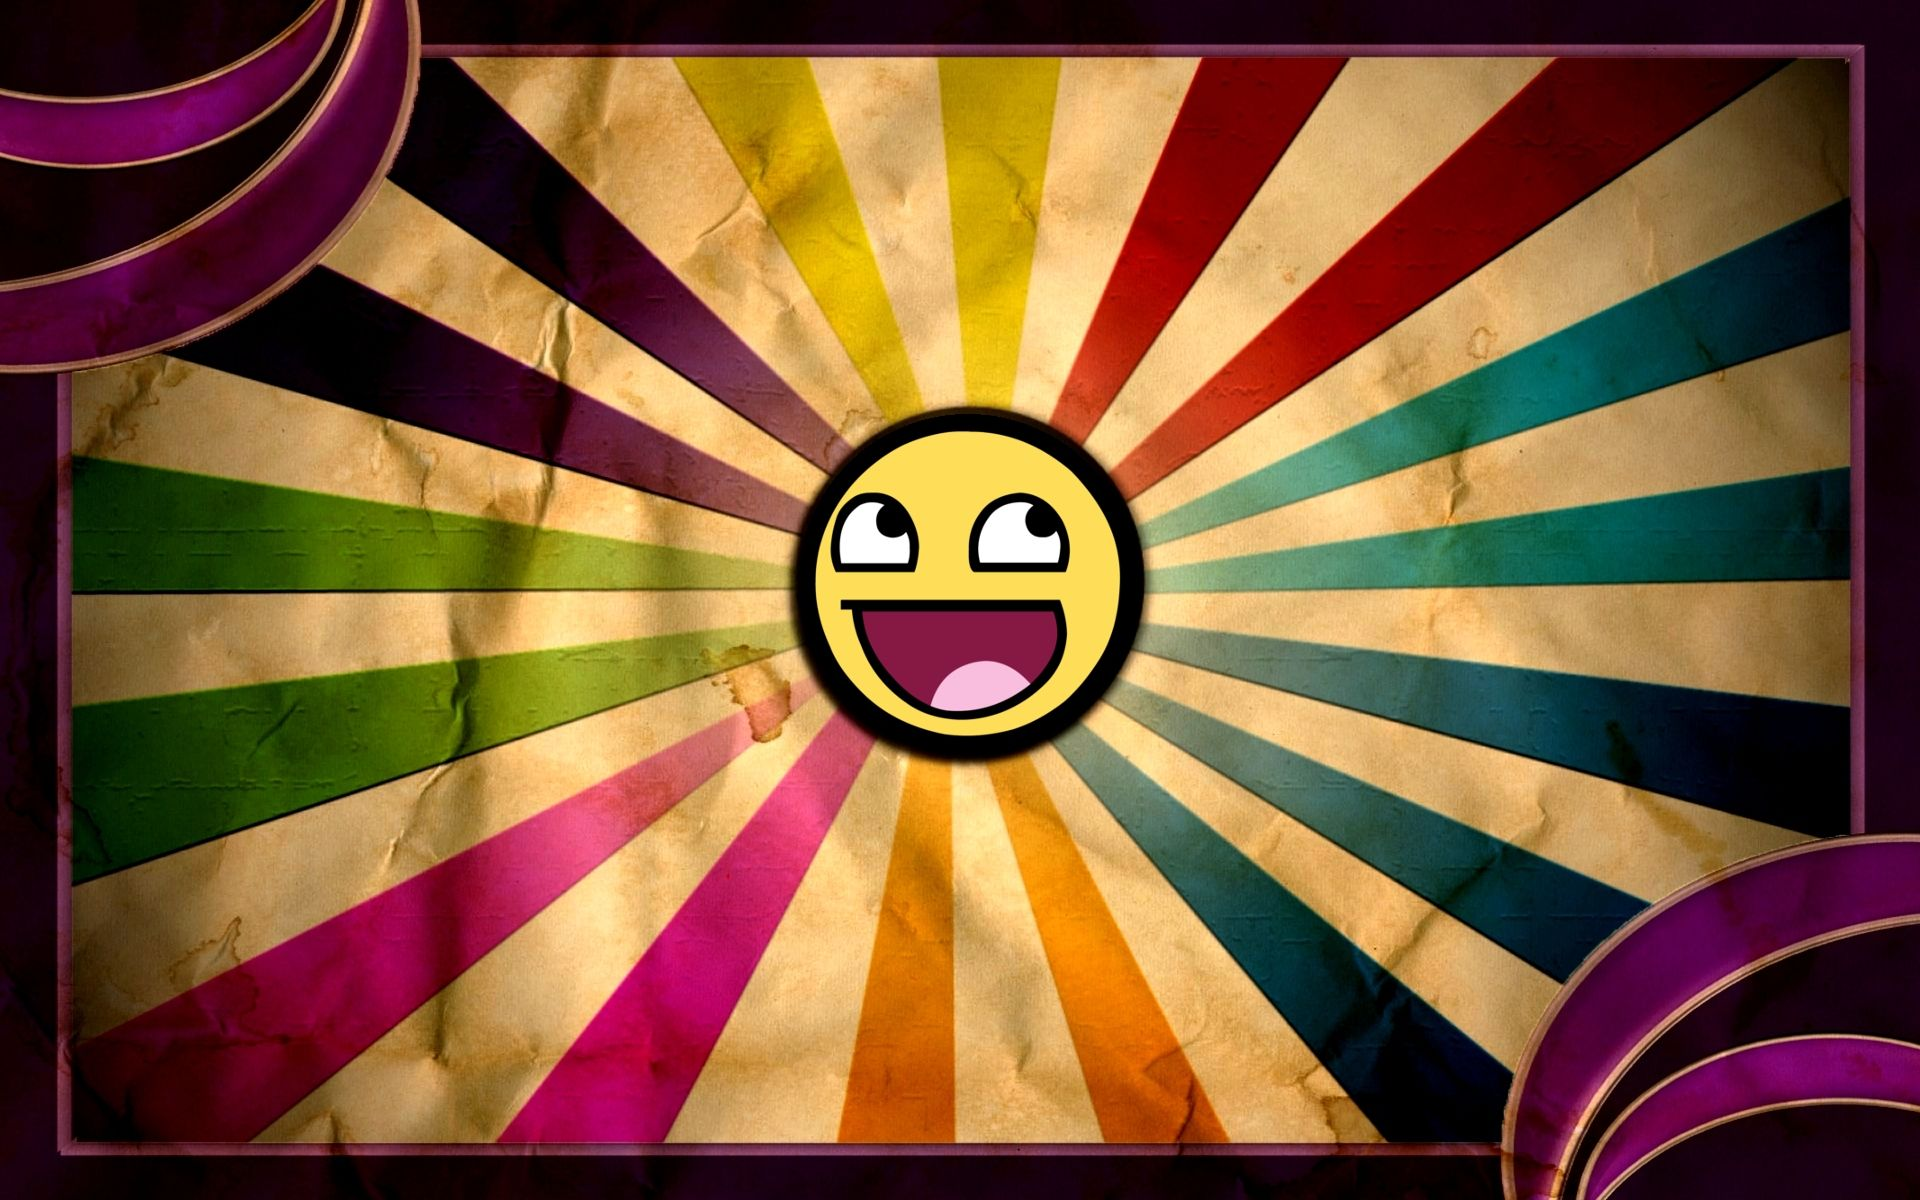 Awesome Wallpapers For Android: Wallpaper Android Awesome Smiley